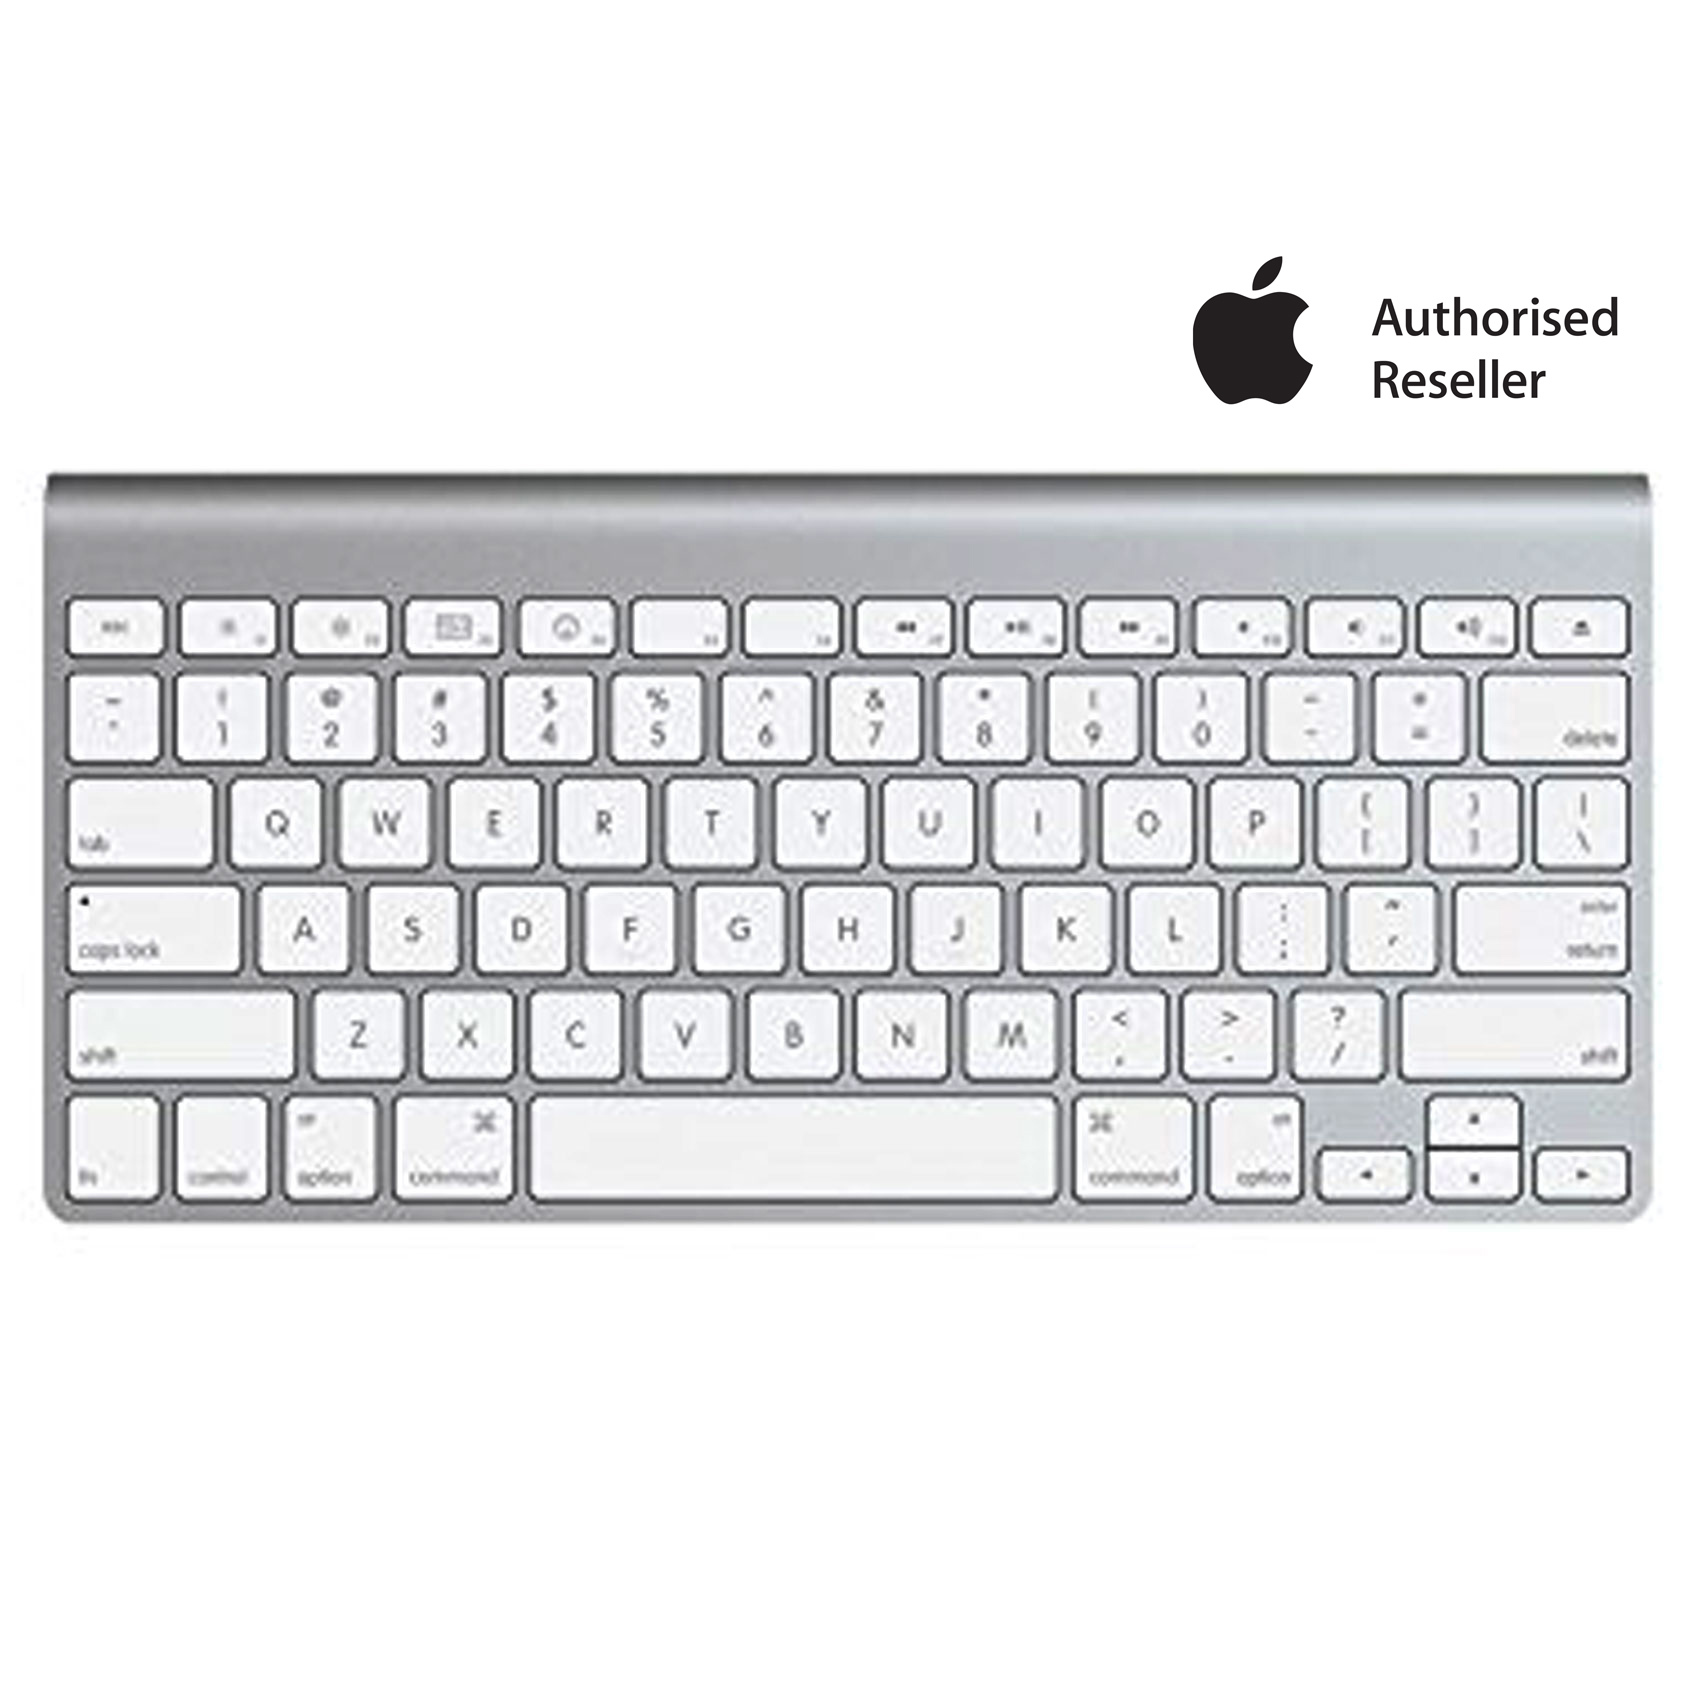 APPLE K/B WIRELESS MC184AB/C A